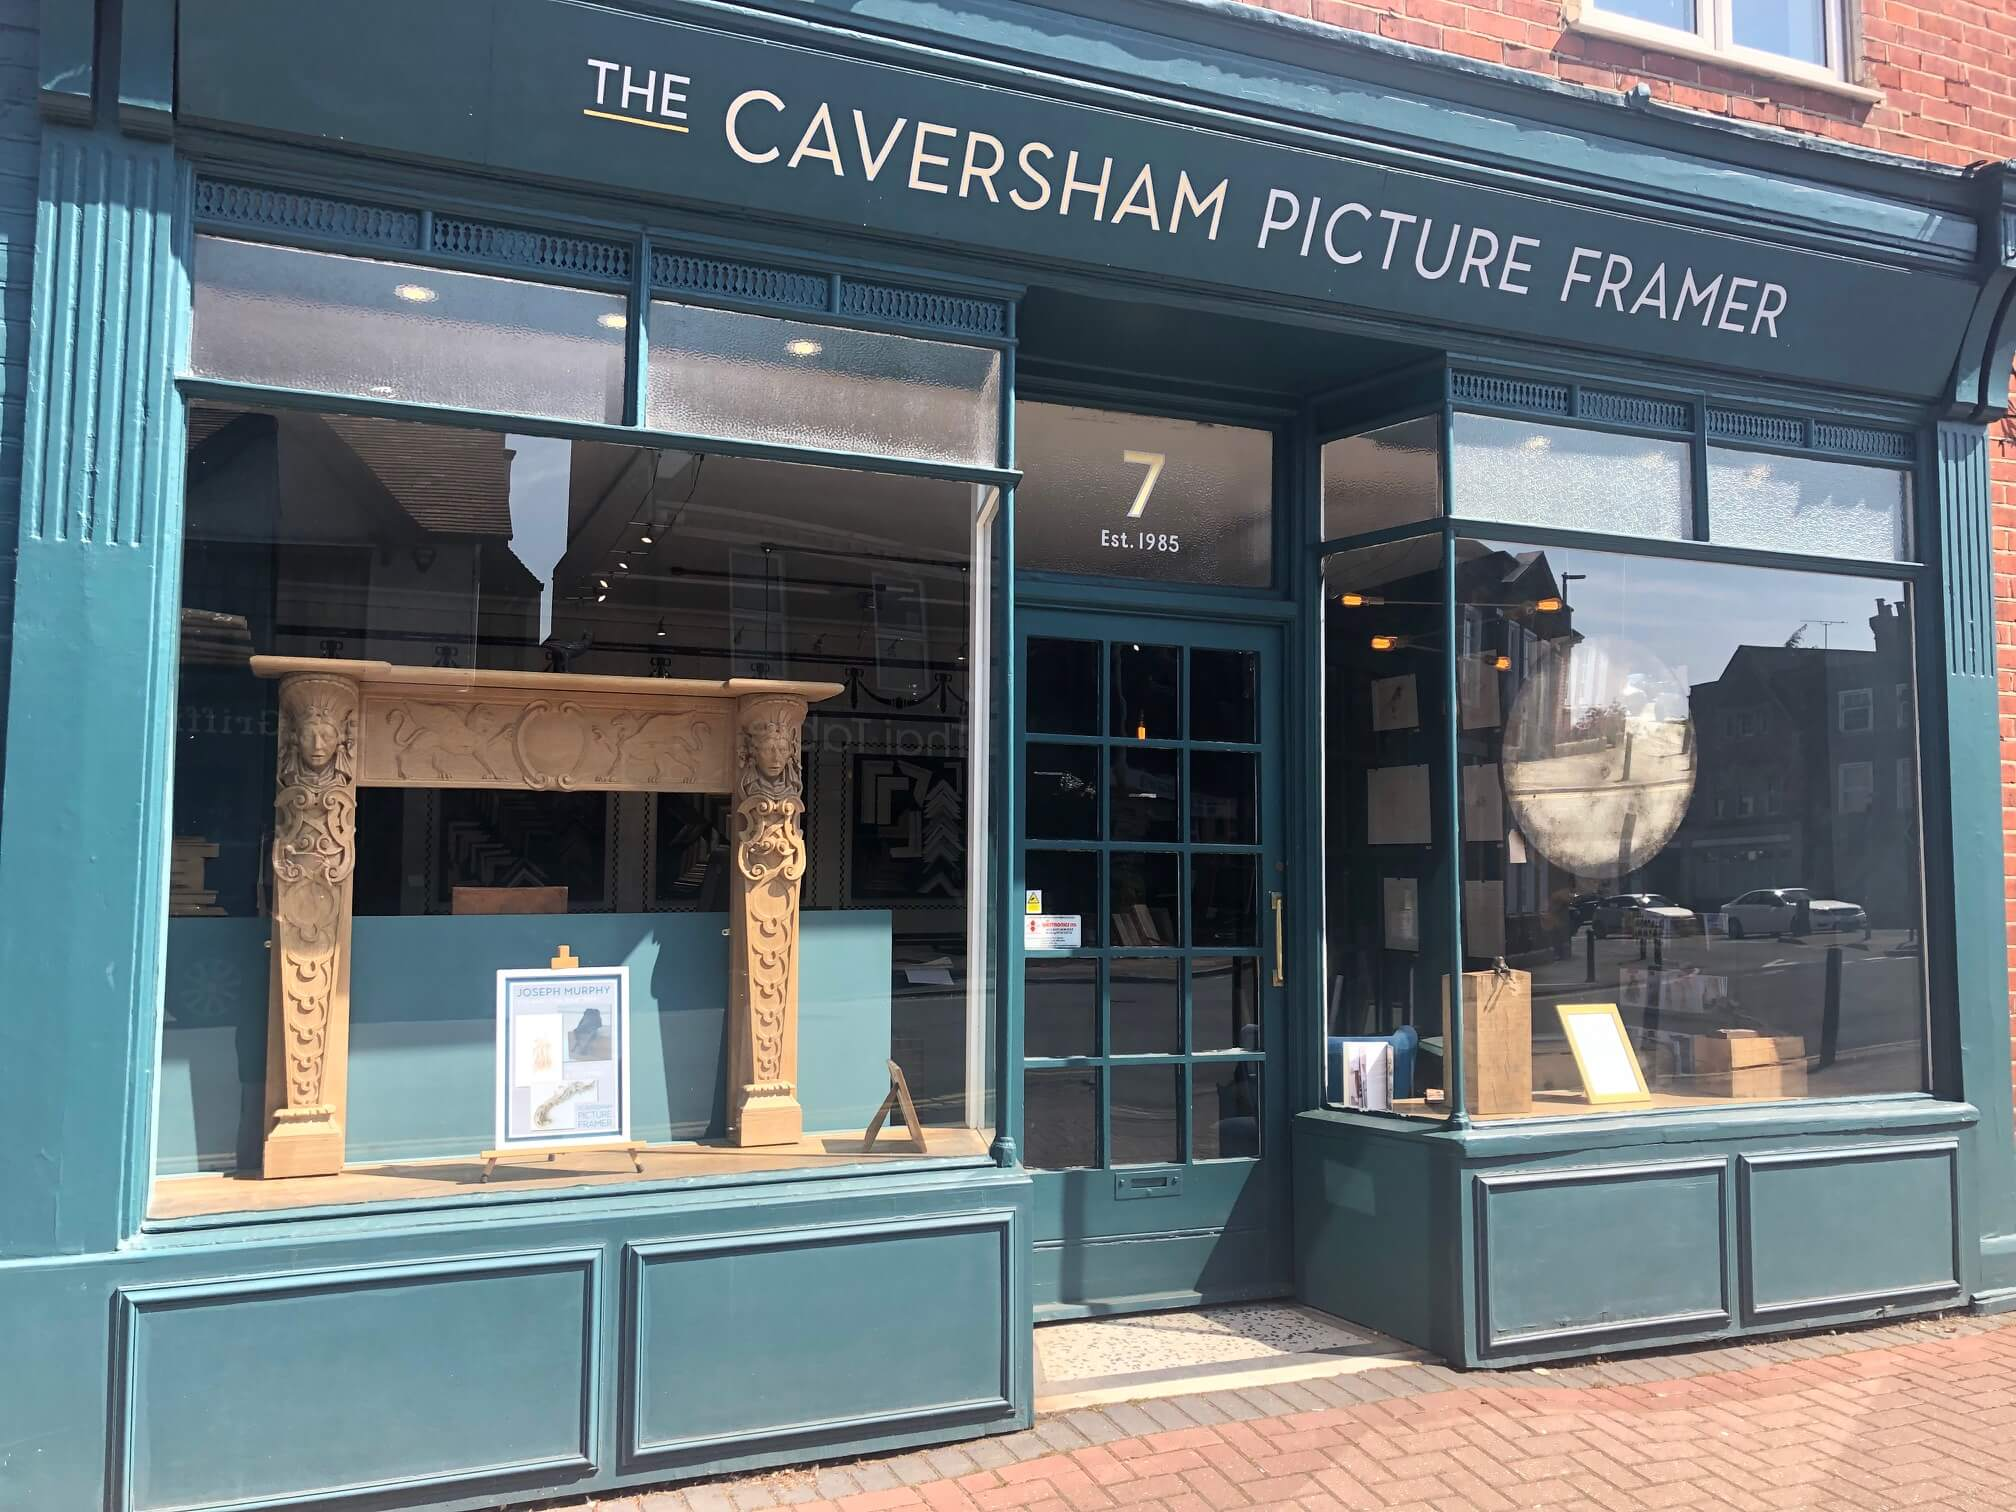 Caversham Picture Framer Reading